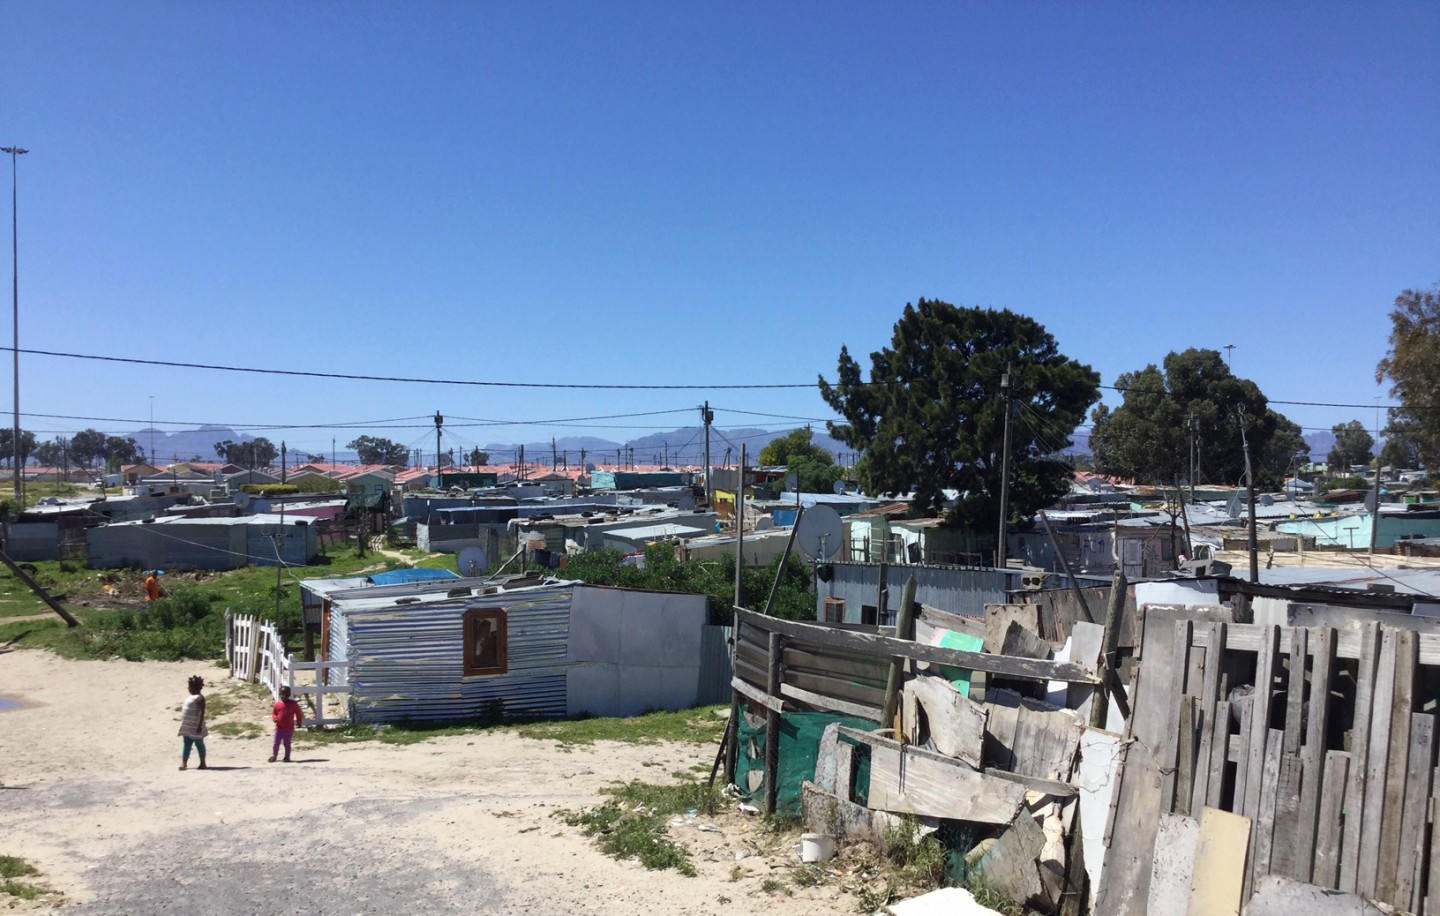 Makeshift shacks in Mfuleni, Cape Town, South Africa. Credit: Ivan Turok, Human Sciences Research Council.